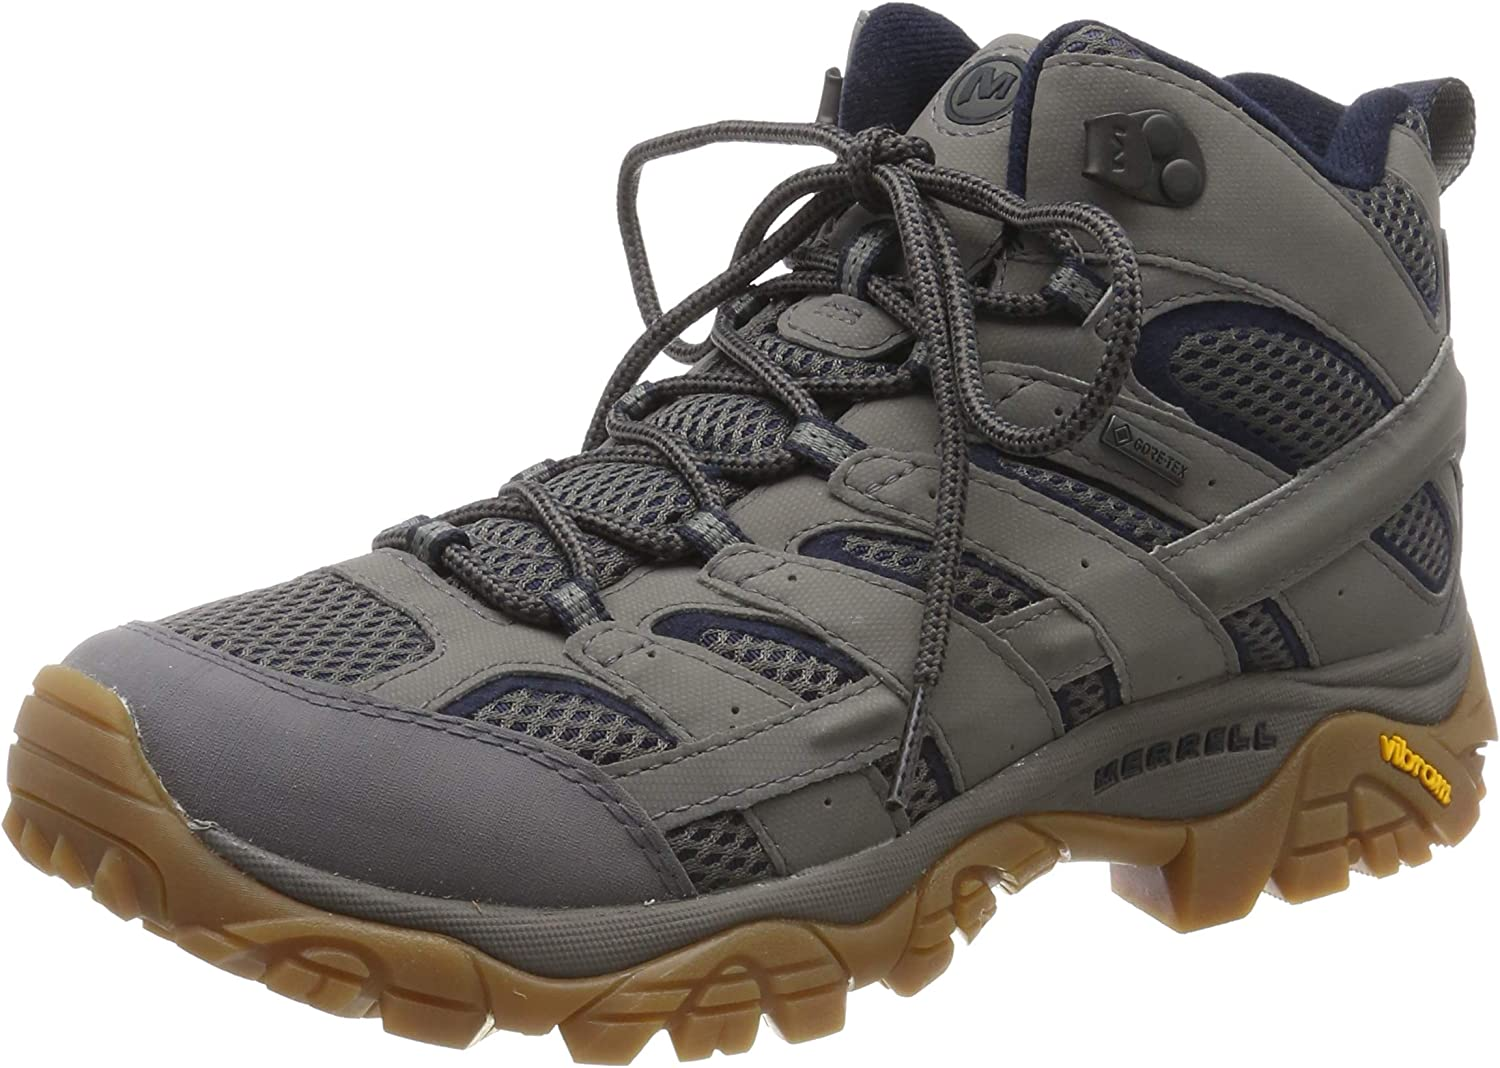 Merrell New product Women's Reservation High Rise us Hiking Shoes